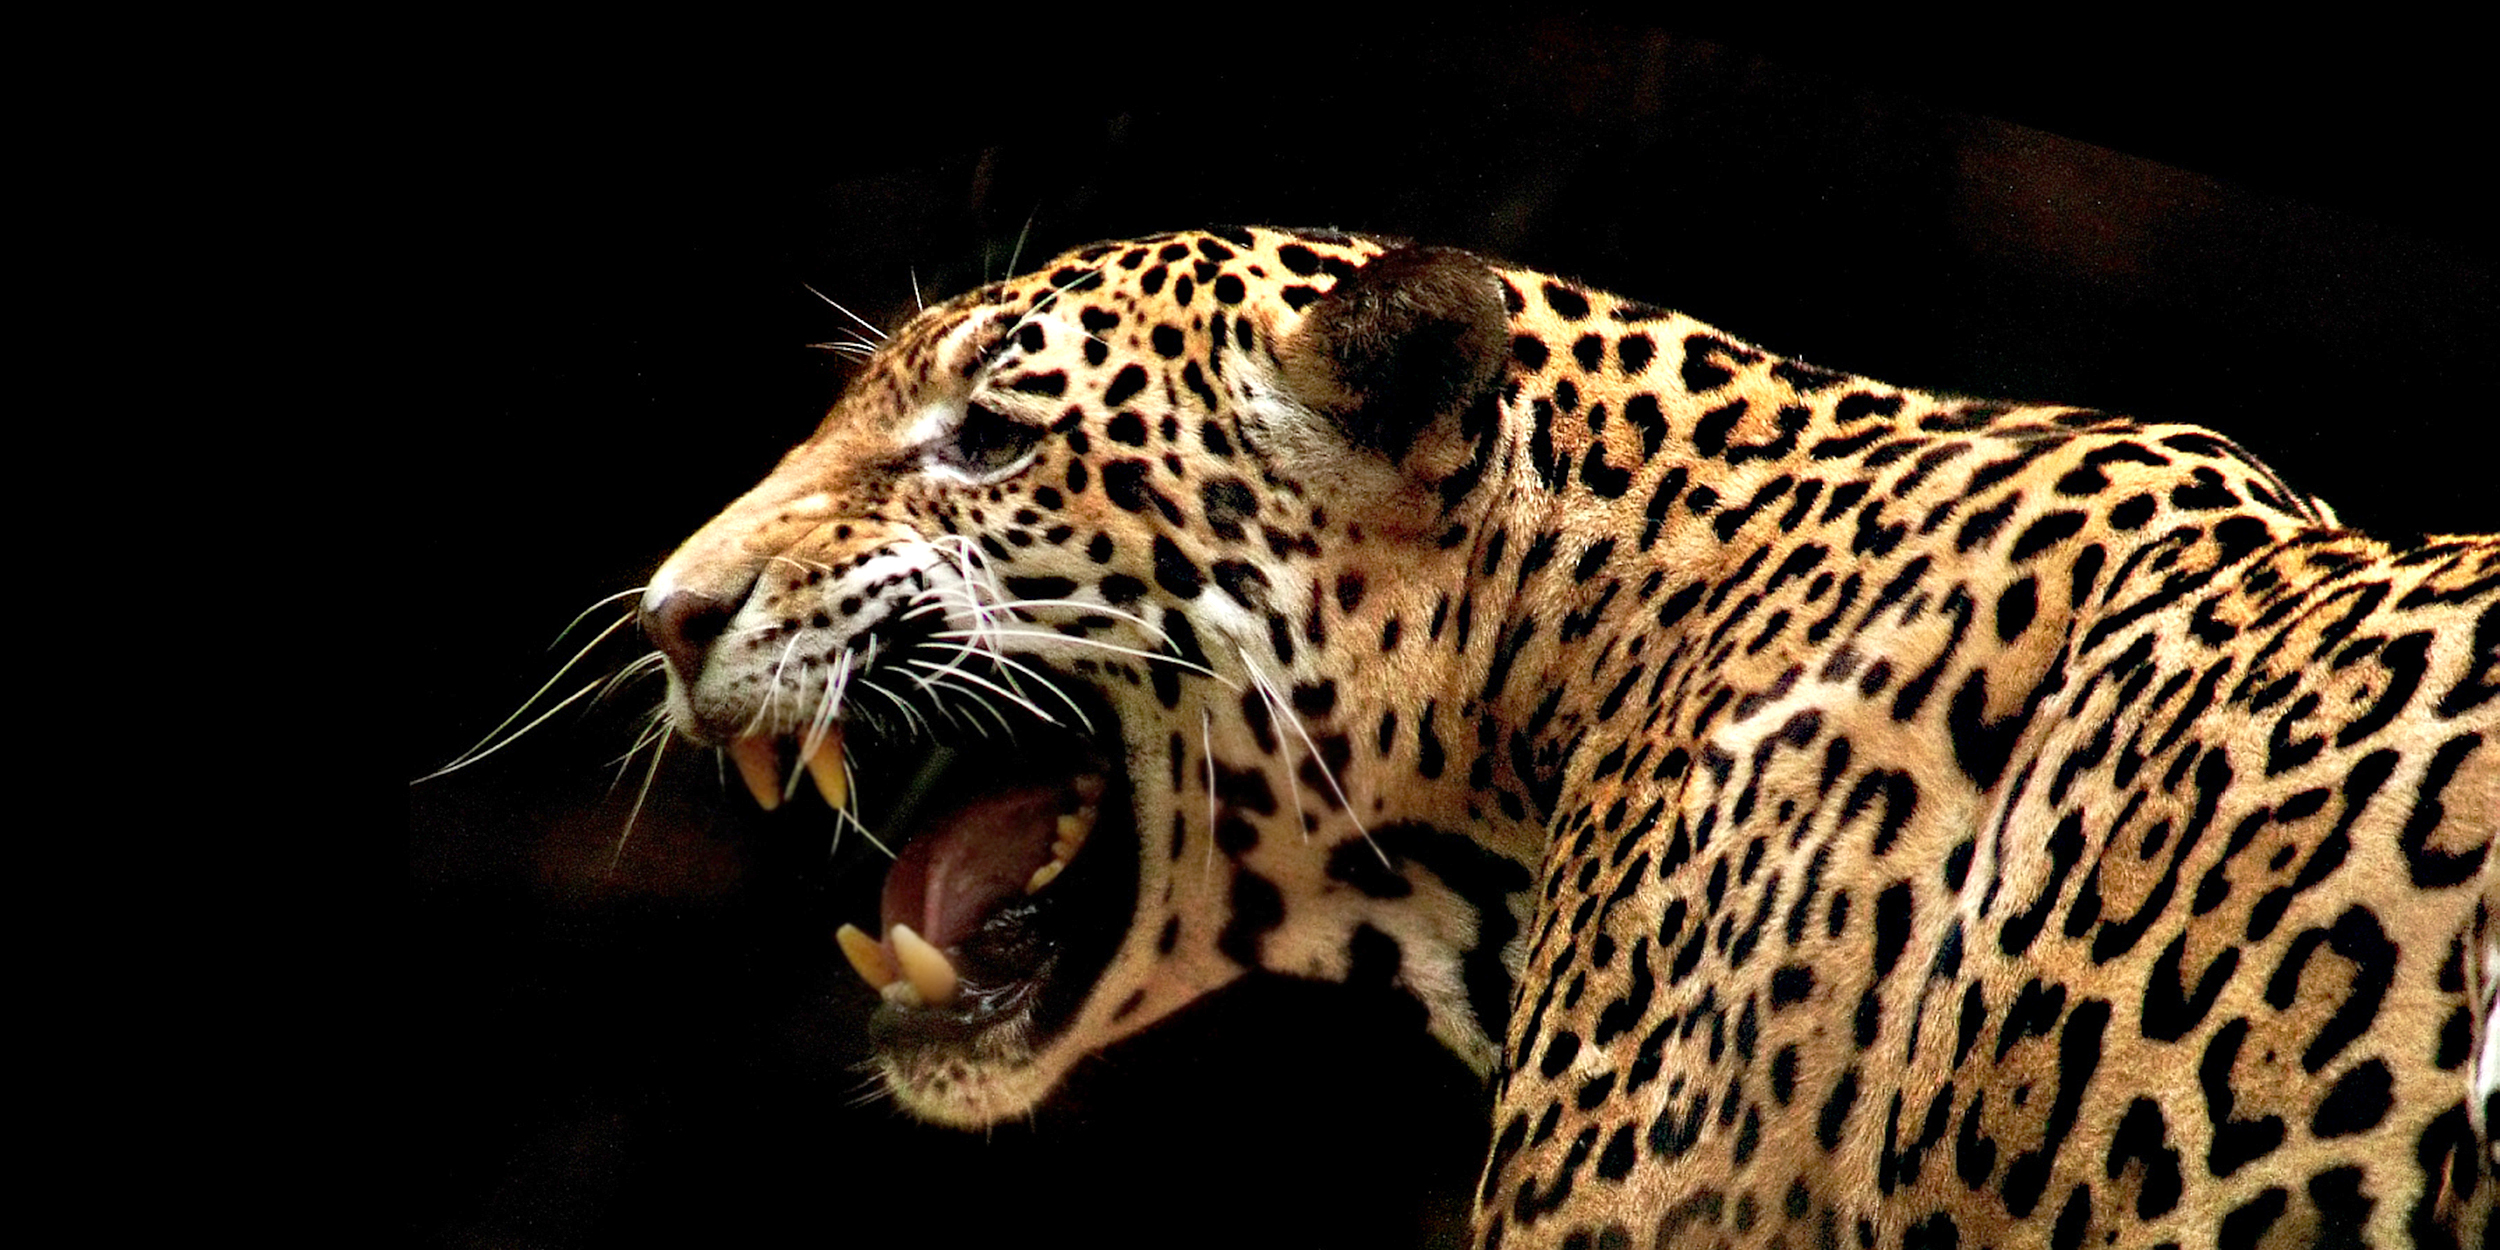 Man injured by jaguar after crossing barrier, Florida zoo says